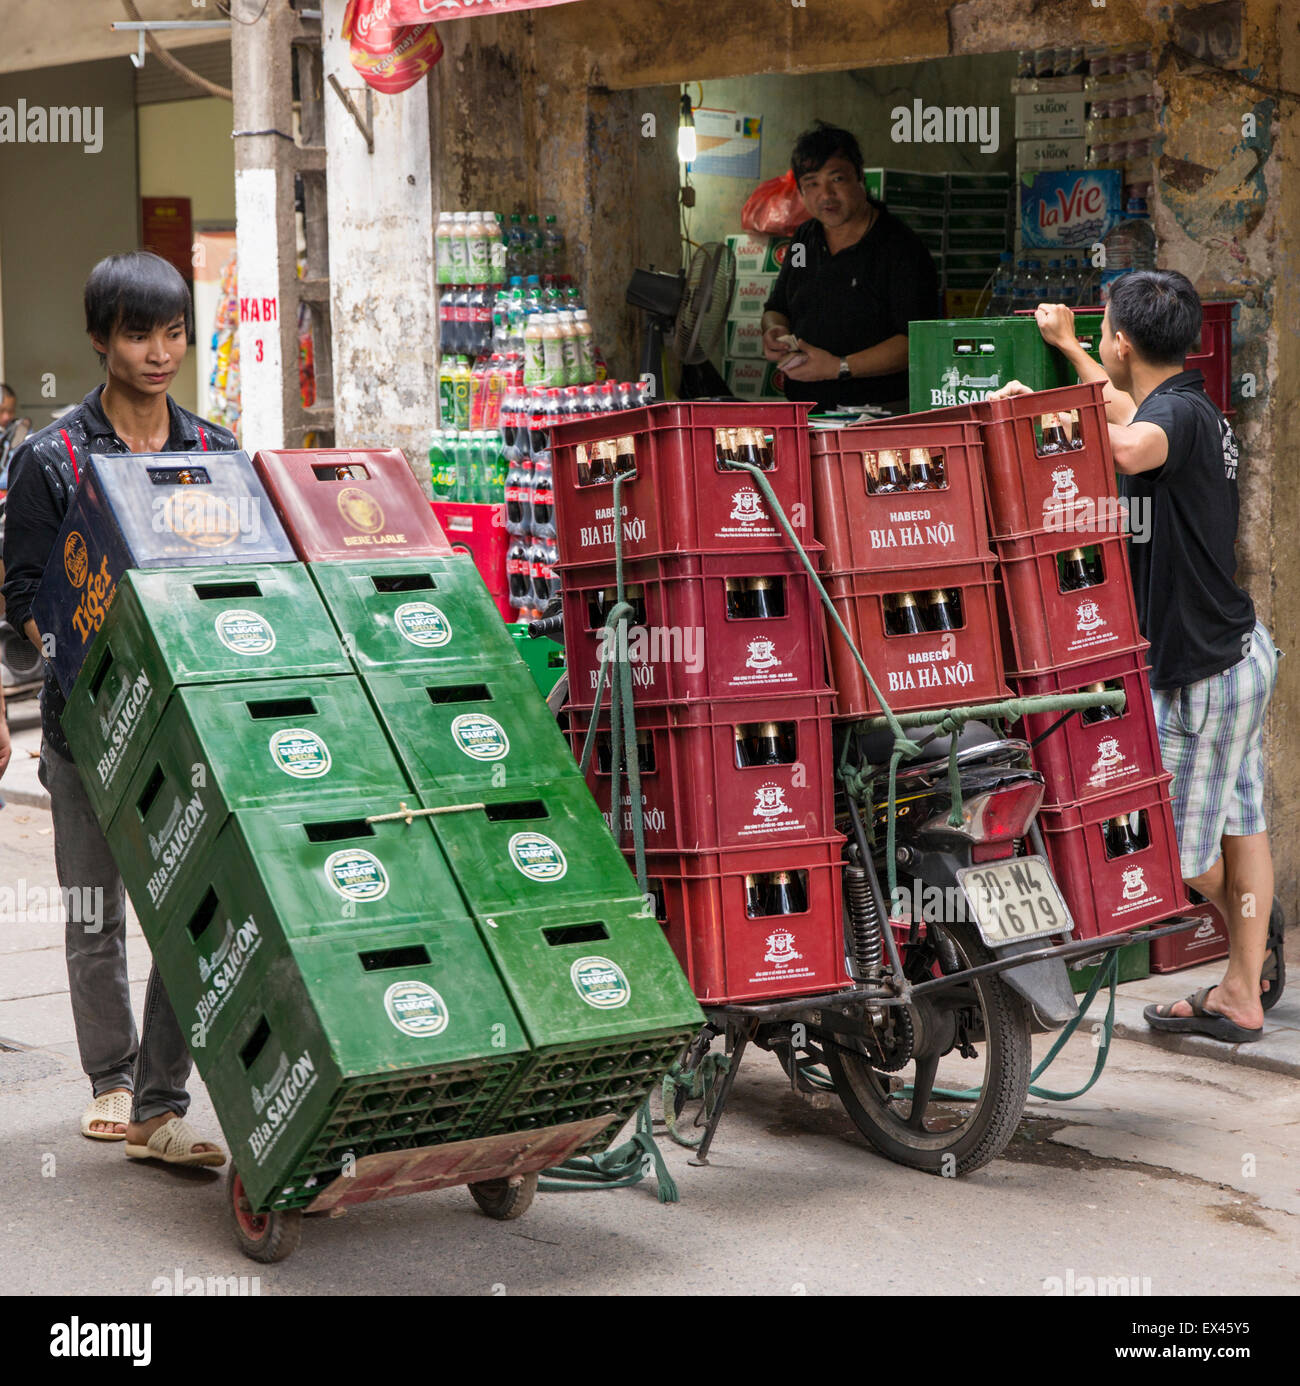 Beer delivery on foot or by bicycle in the Old Town, Hanoi Vietnam - Stock Image